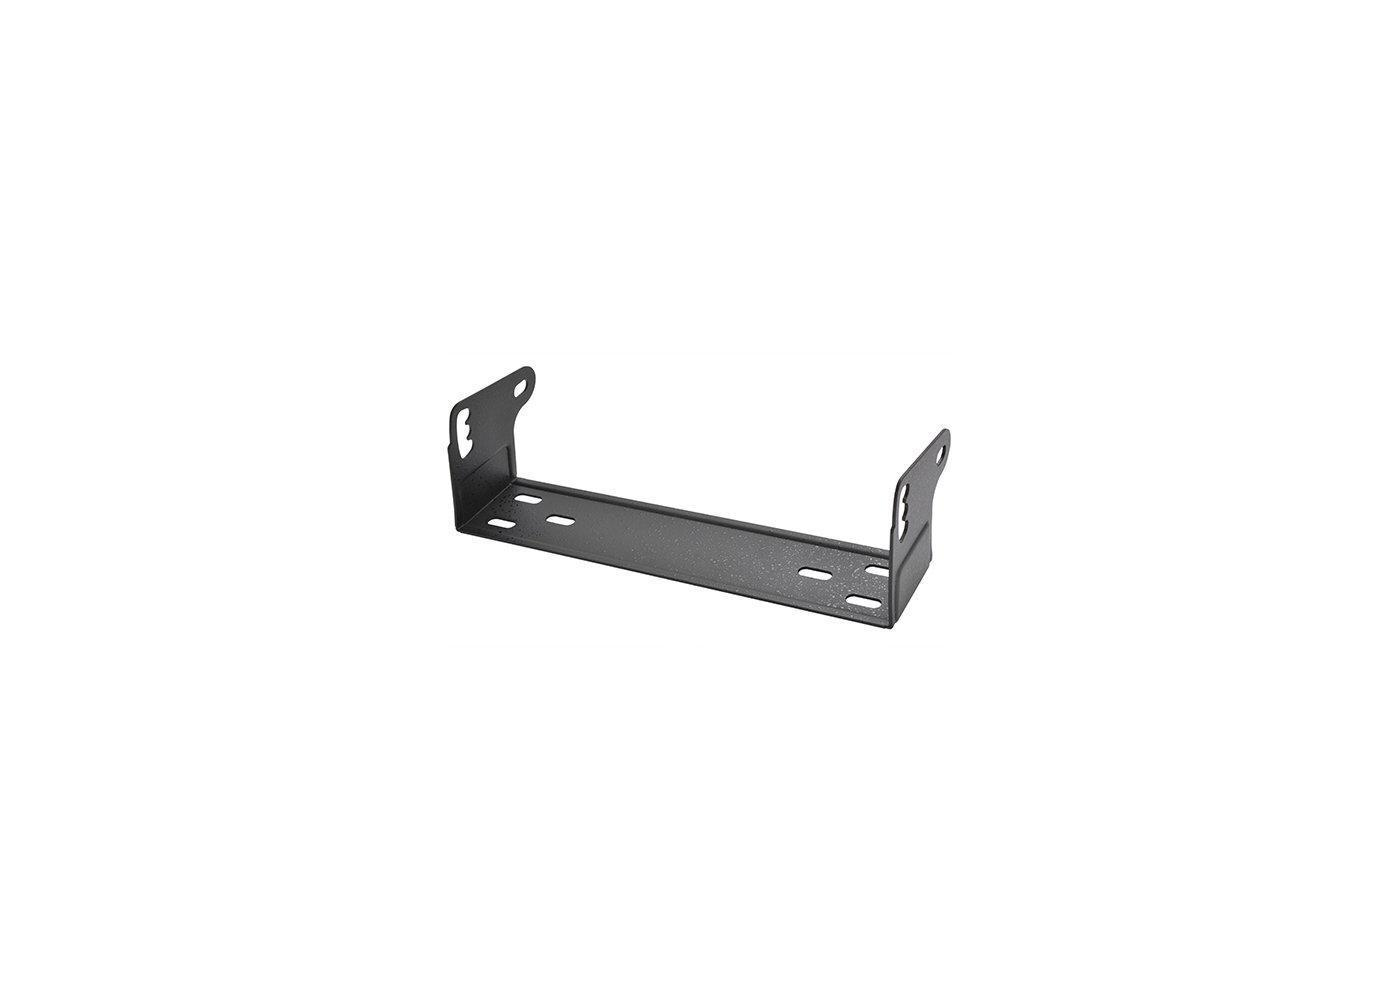 148 GTL Mounting Bracket - cobra.com